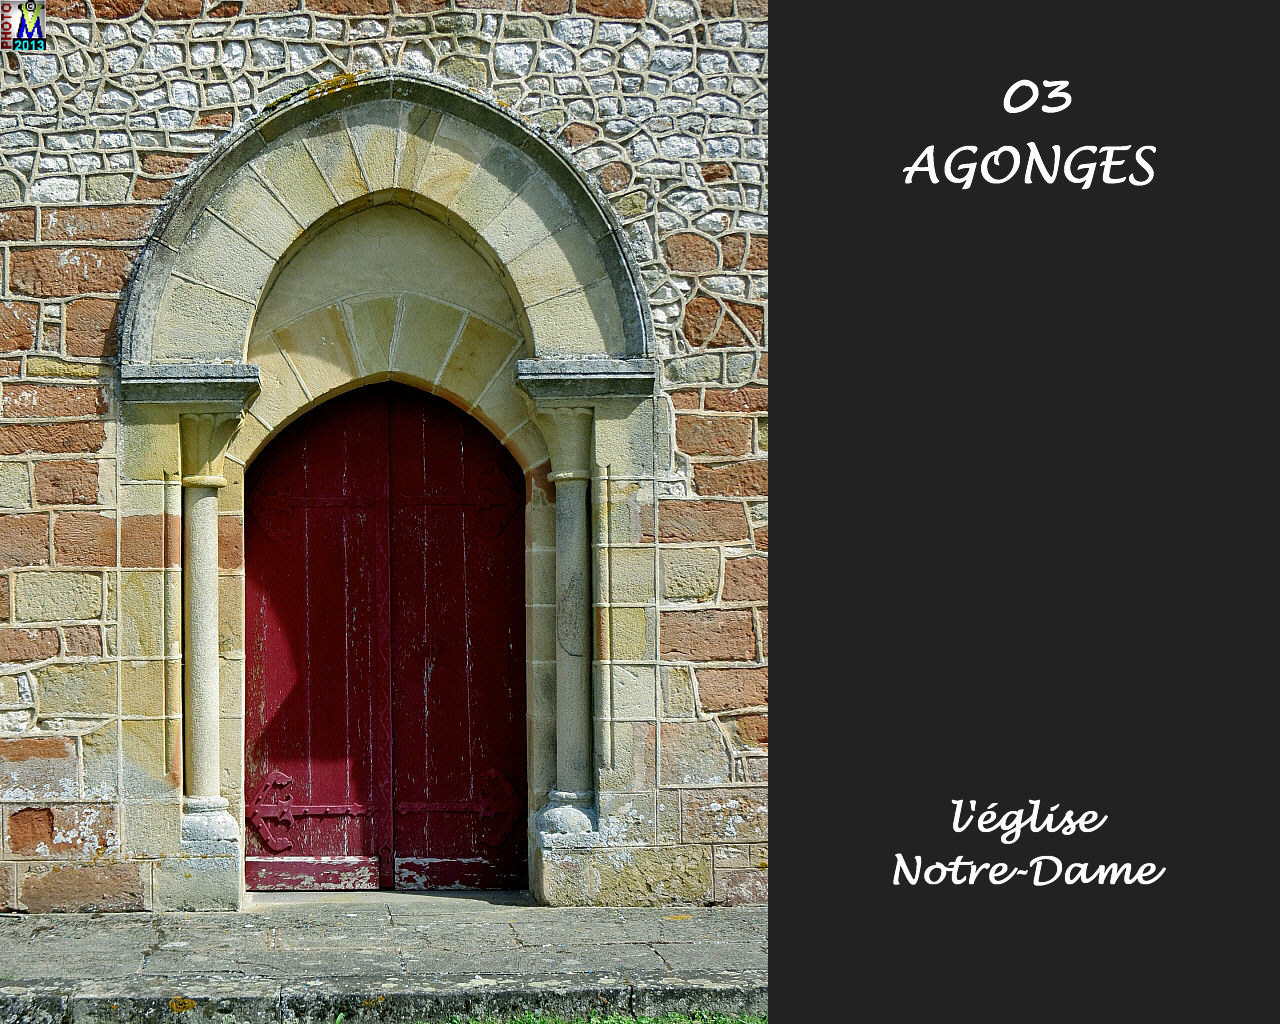 03AGONGES_eglise_140.jpg